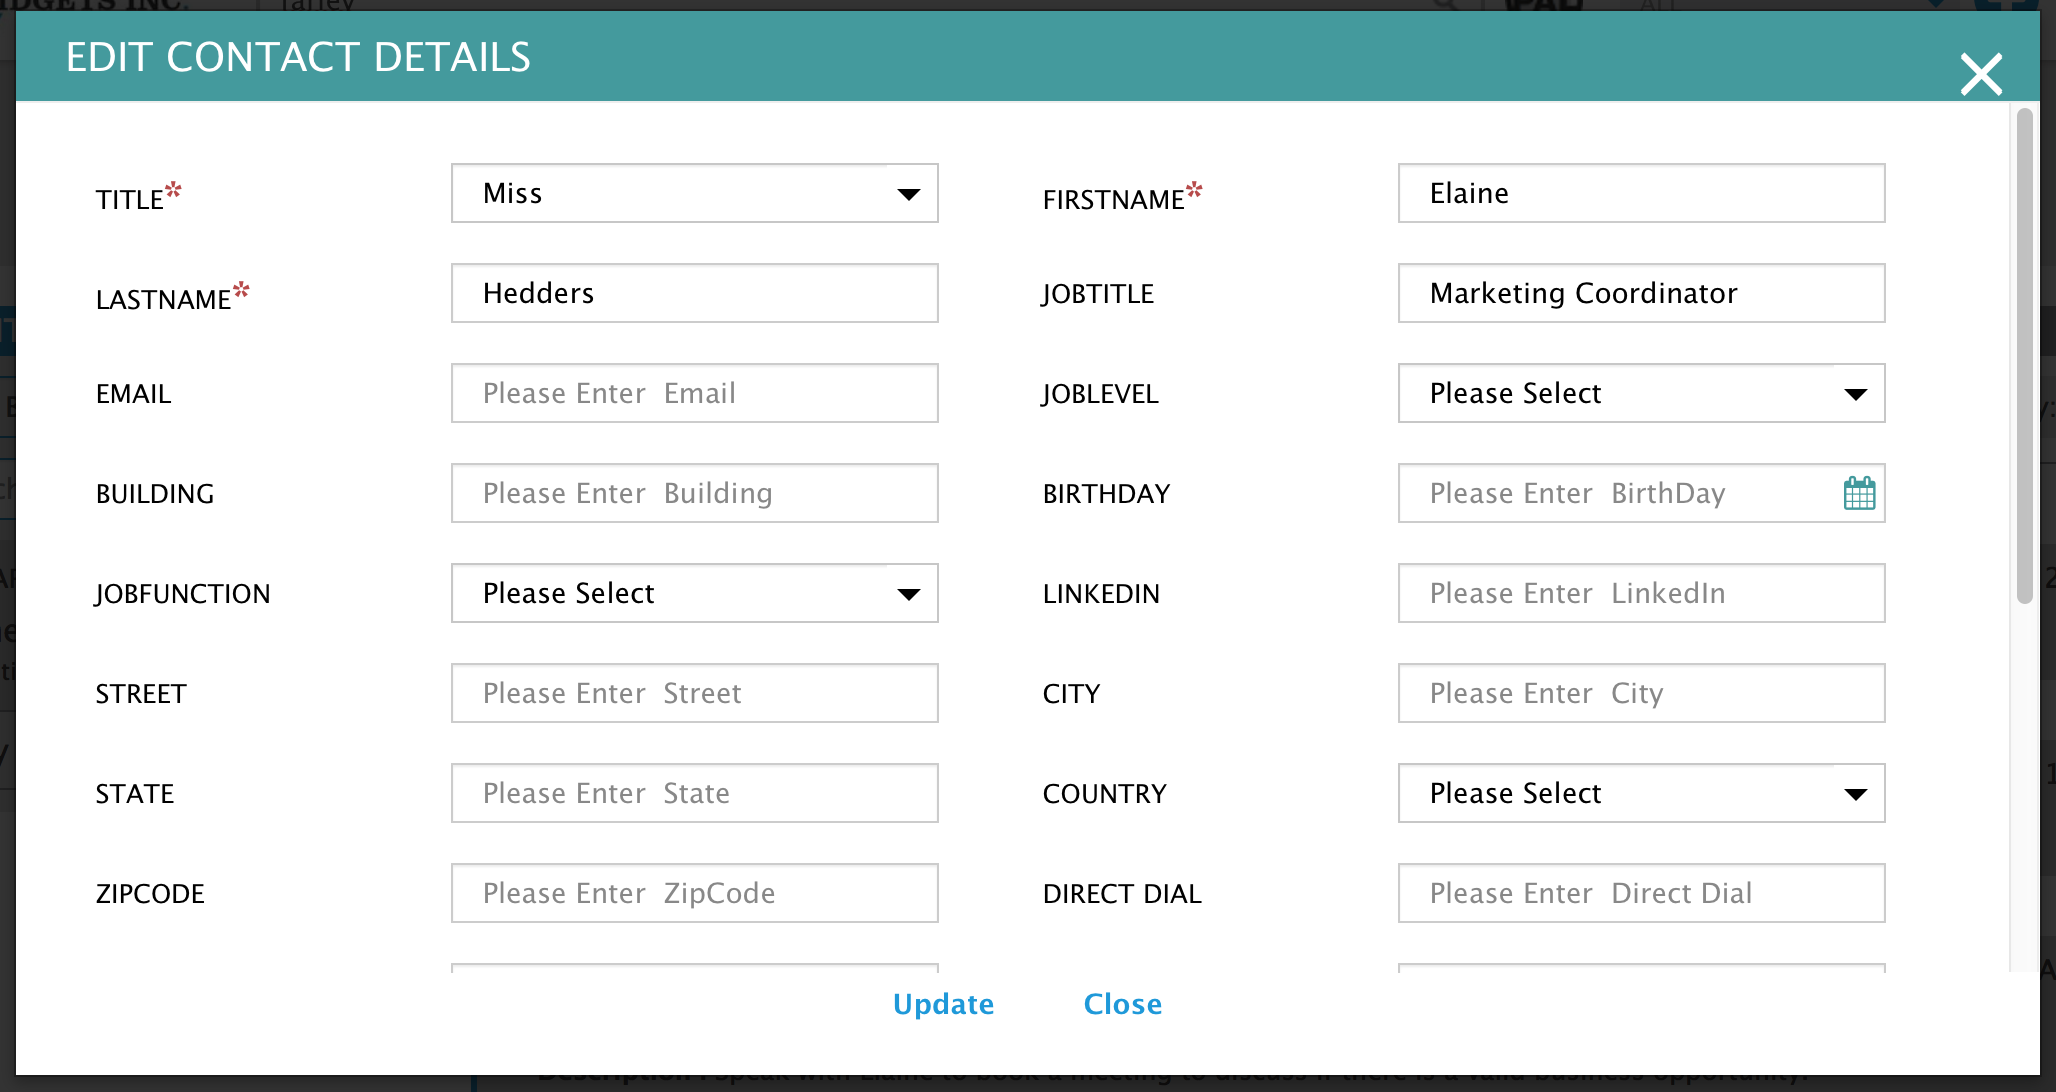 edit the details of an existing contact on BuddyCRM